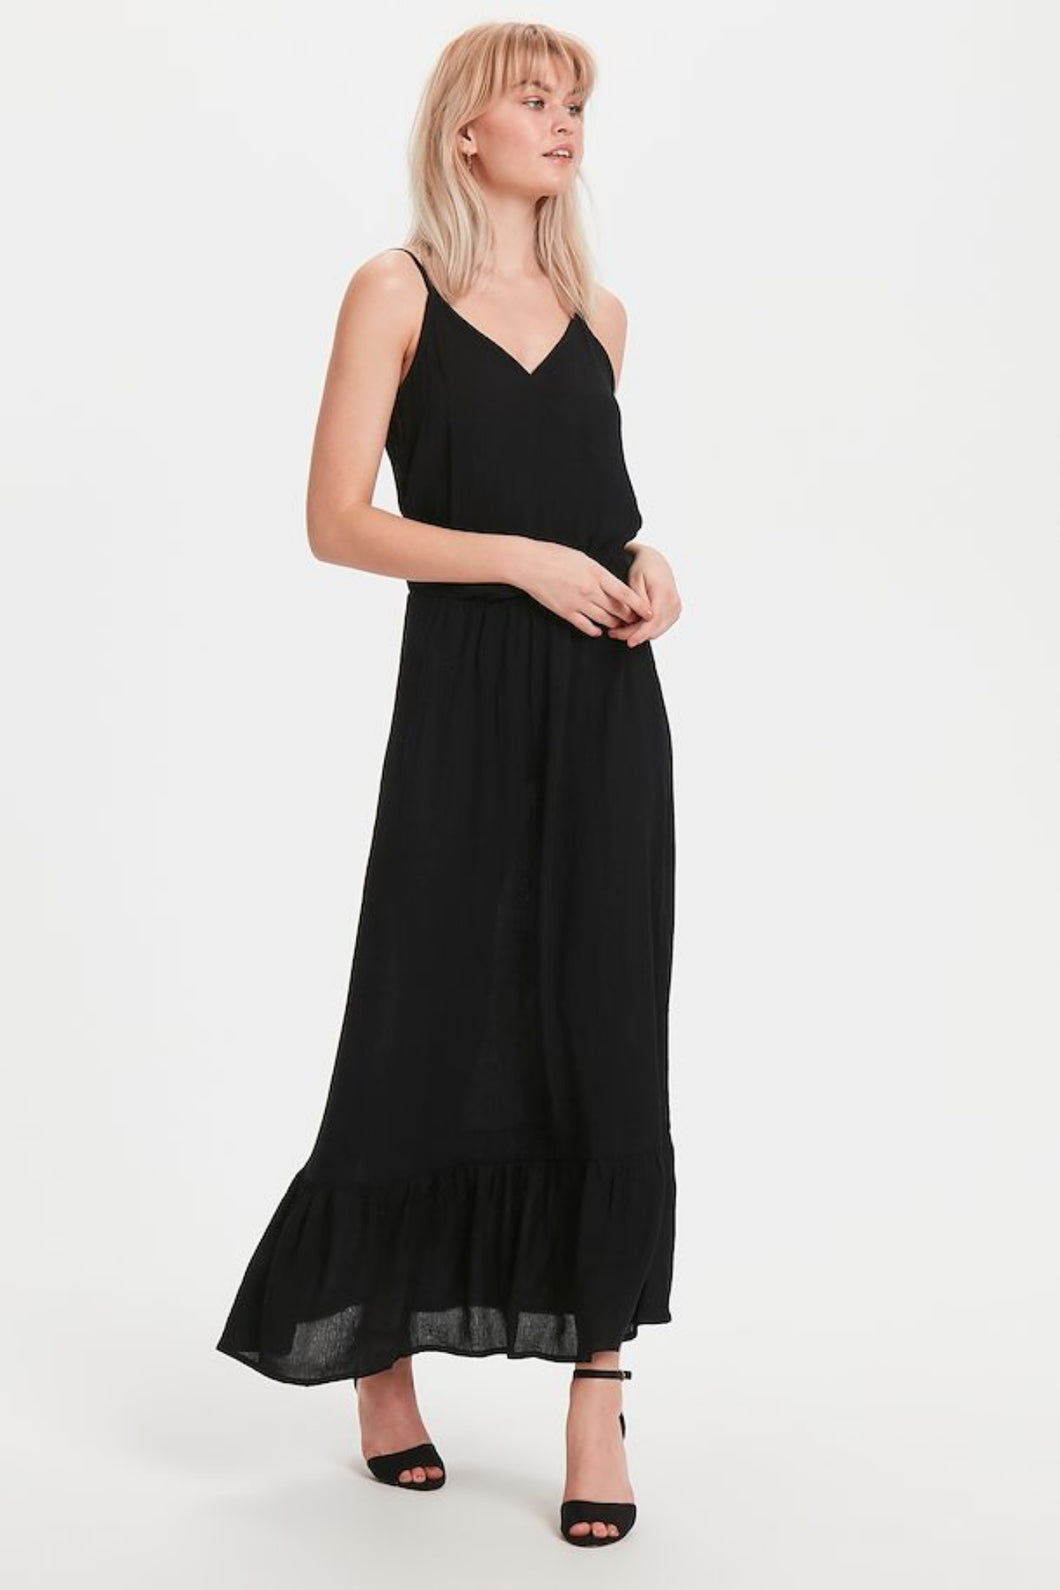 Marrakech Solid Dress - Black / XS - KLÄNNINGAR DAM, ICHI,